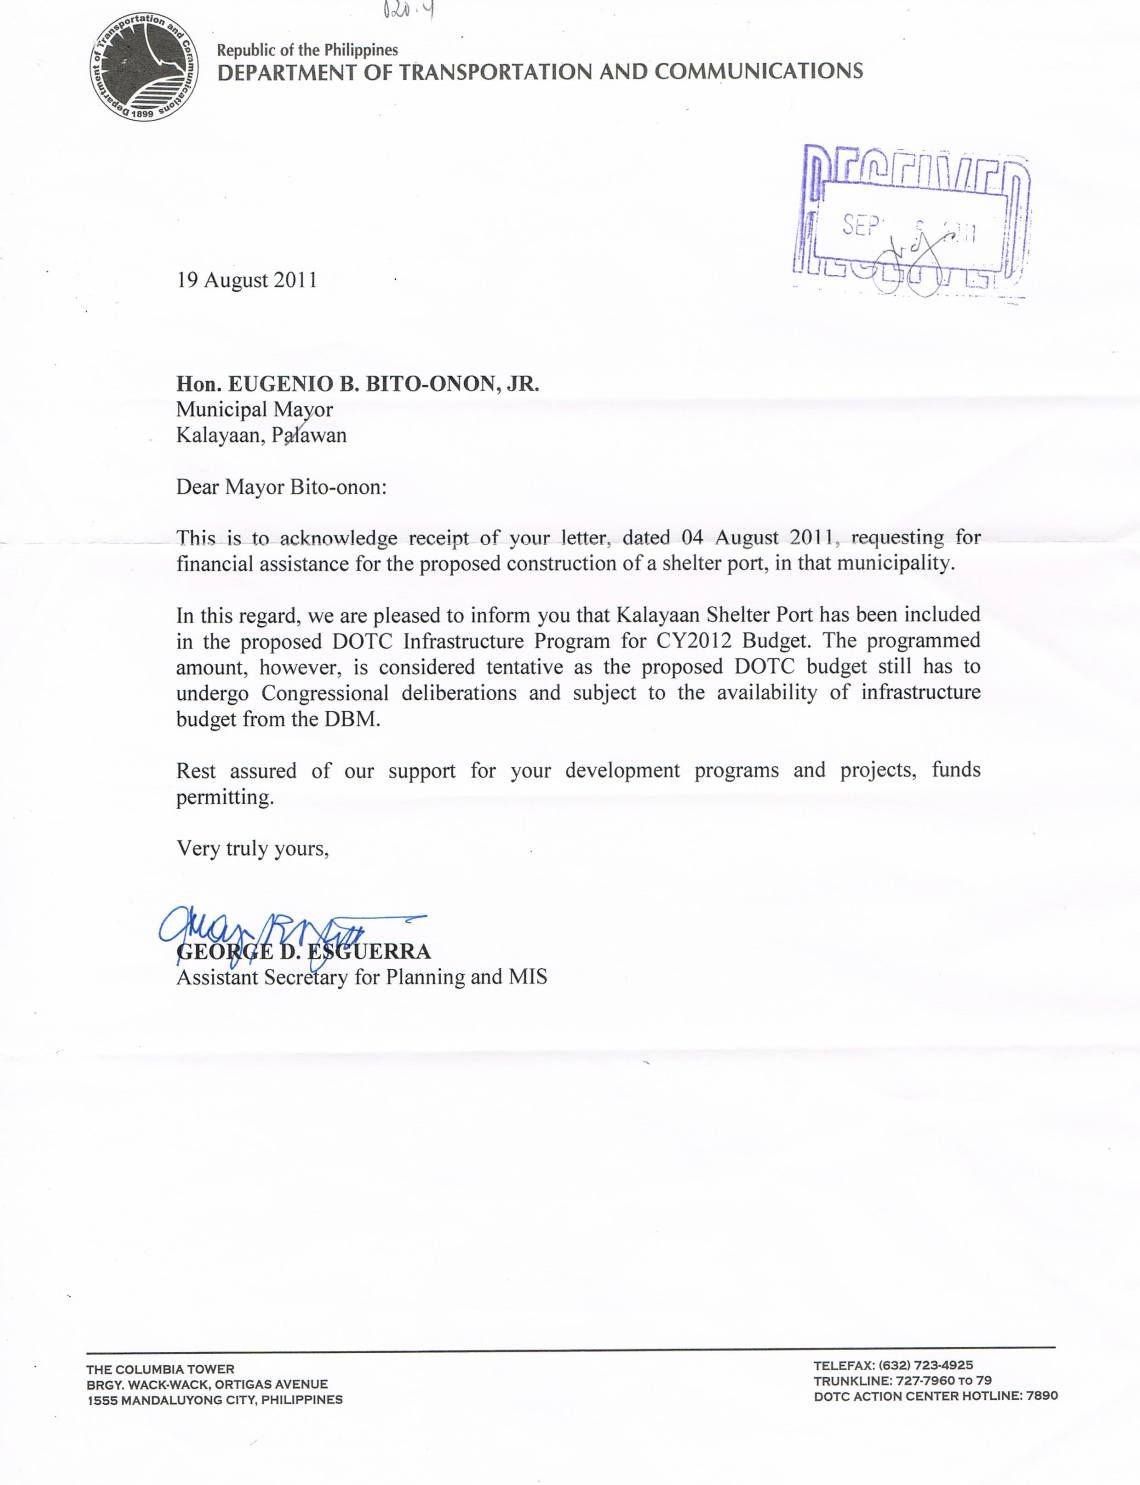 Sample Application Letter For Government Position Philippines